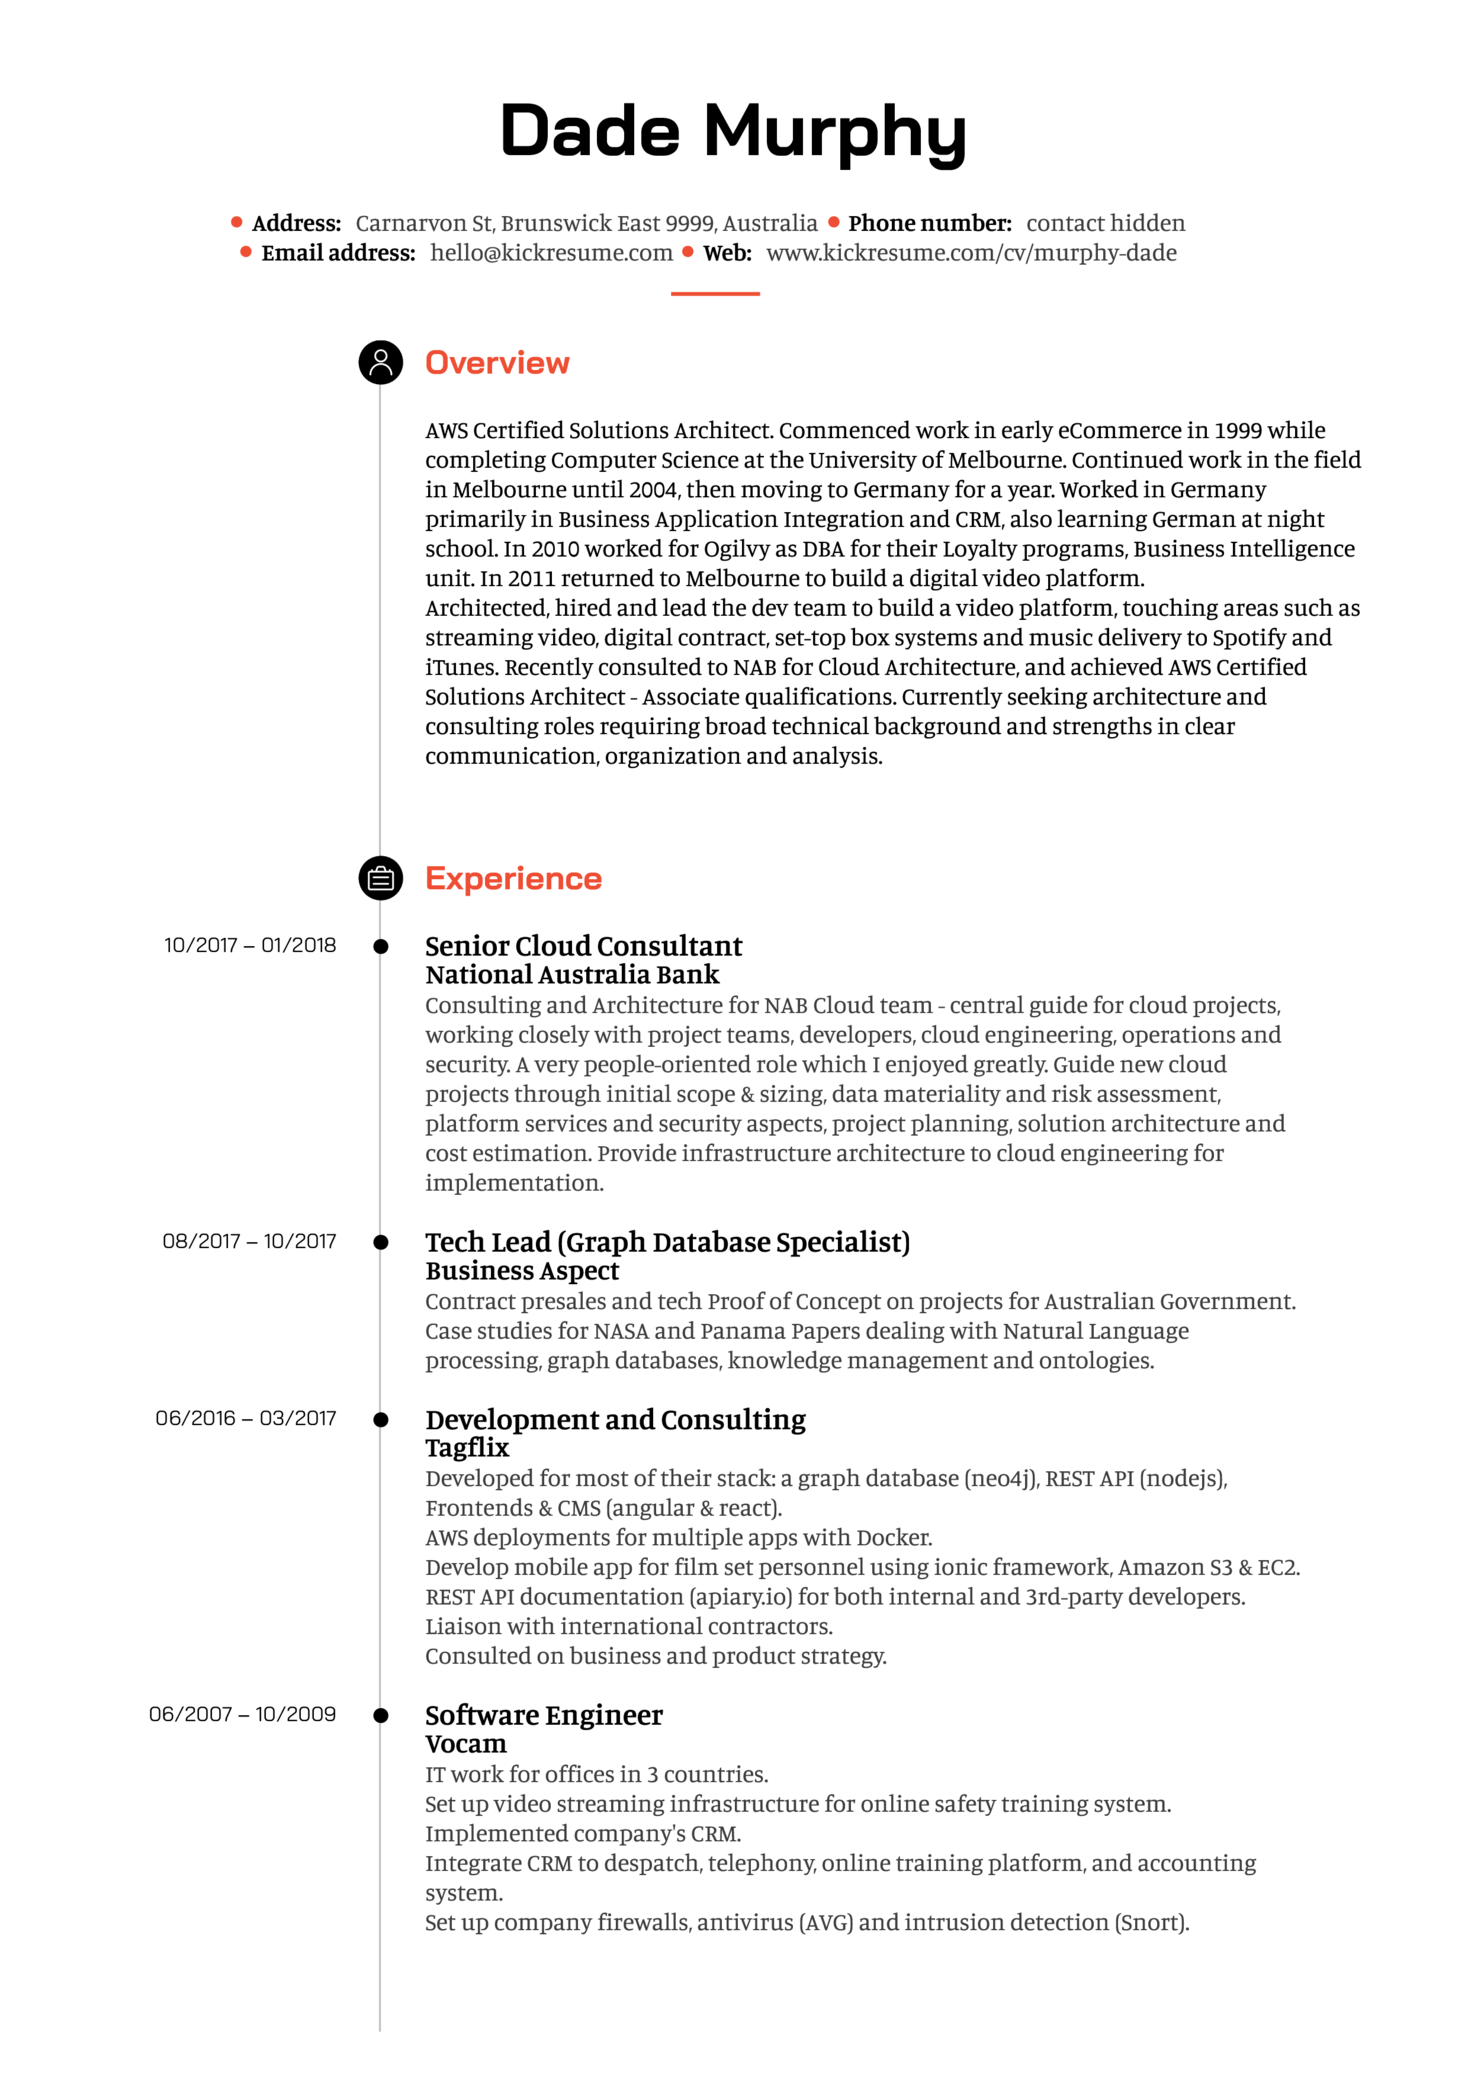 Bank senior cloud architect resume example | Resume samples | Career ...